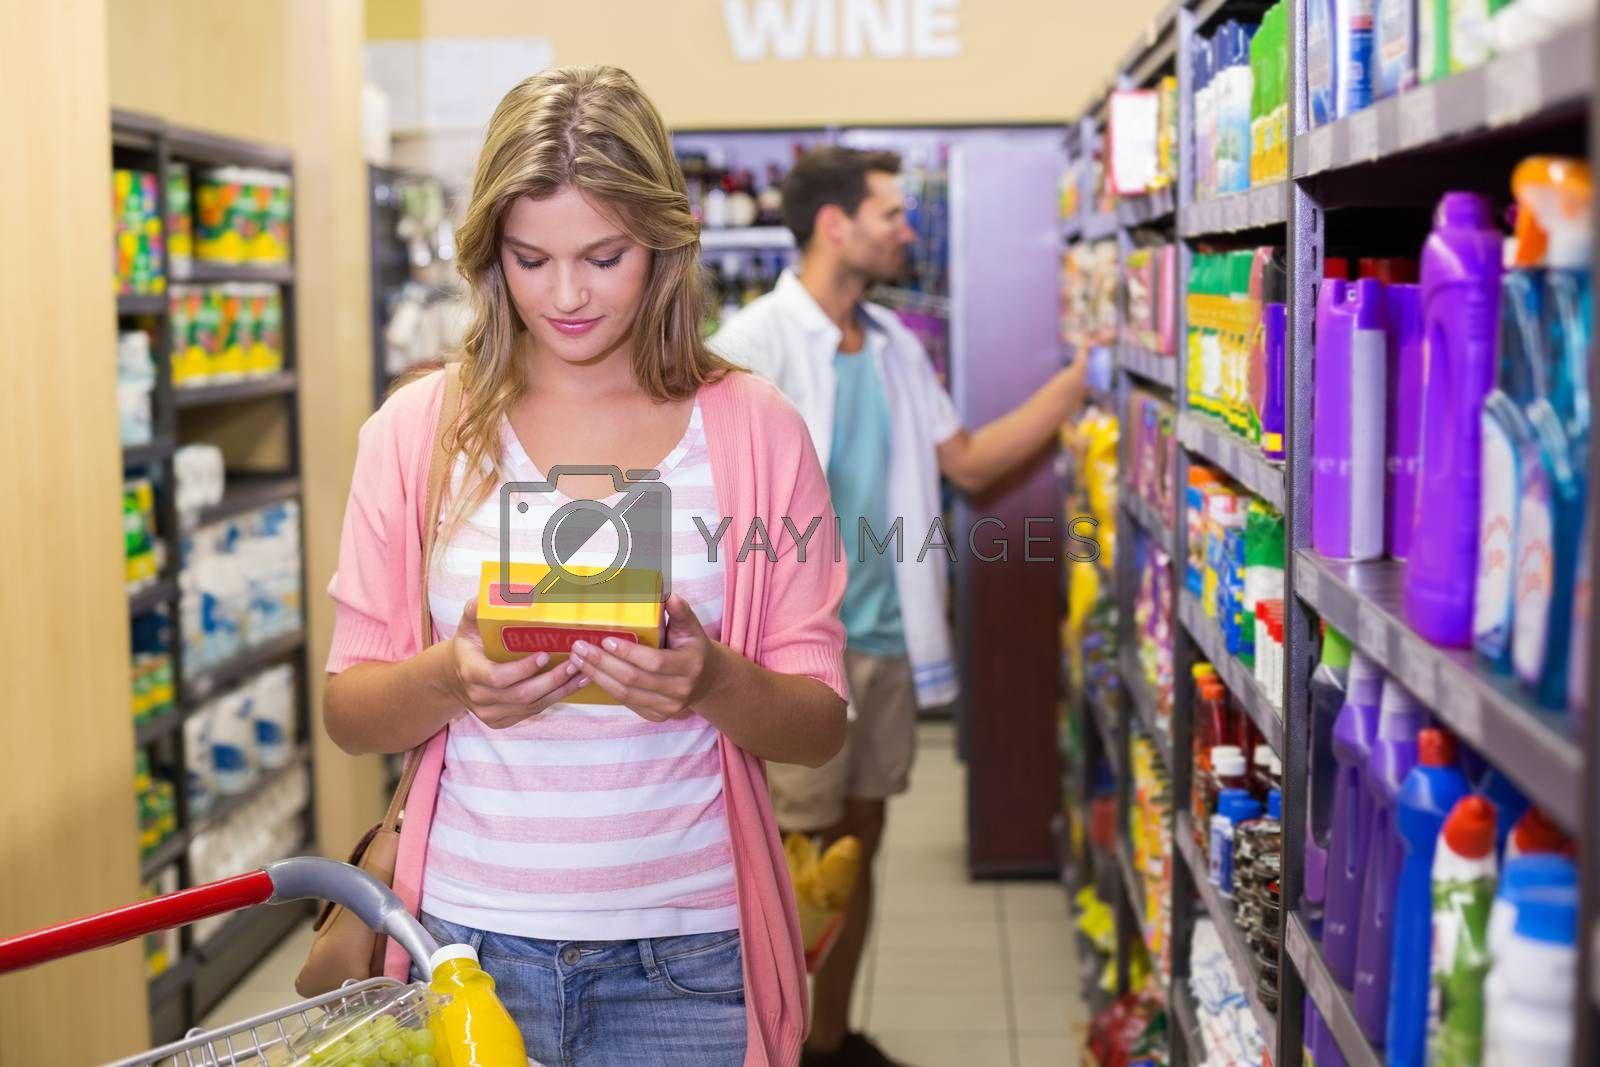 Royalty free image of Smiling pretty young woman buying a products  by Wavebreakmedia